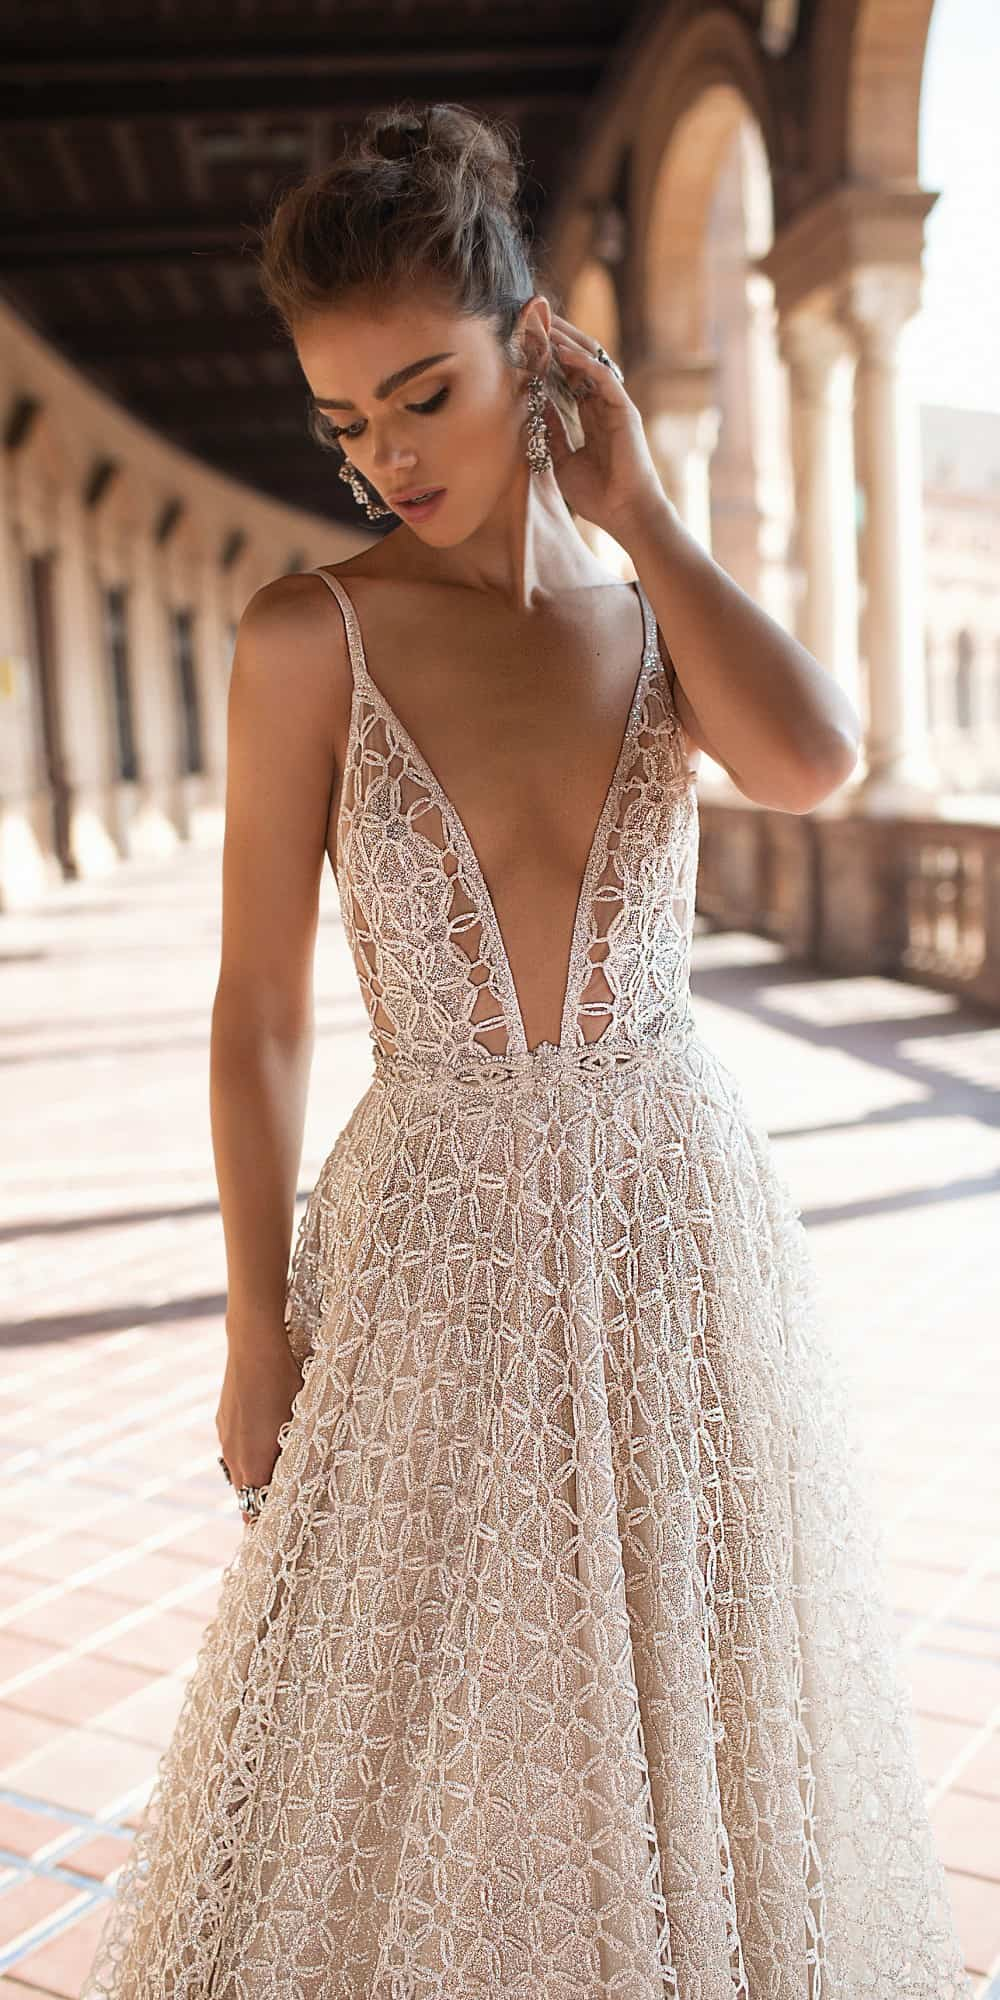 sheer embellished wedding dress with plunging neckline by berta bridal